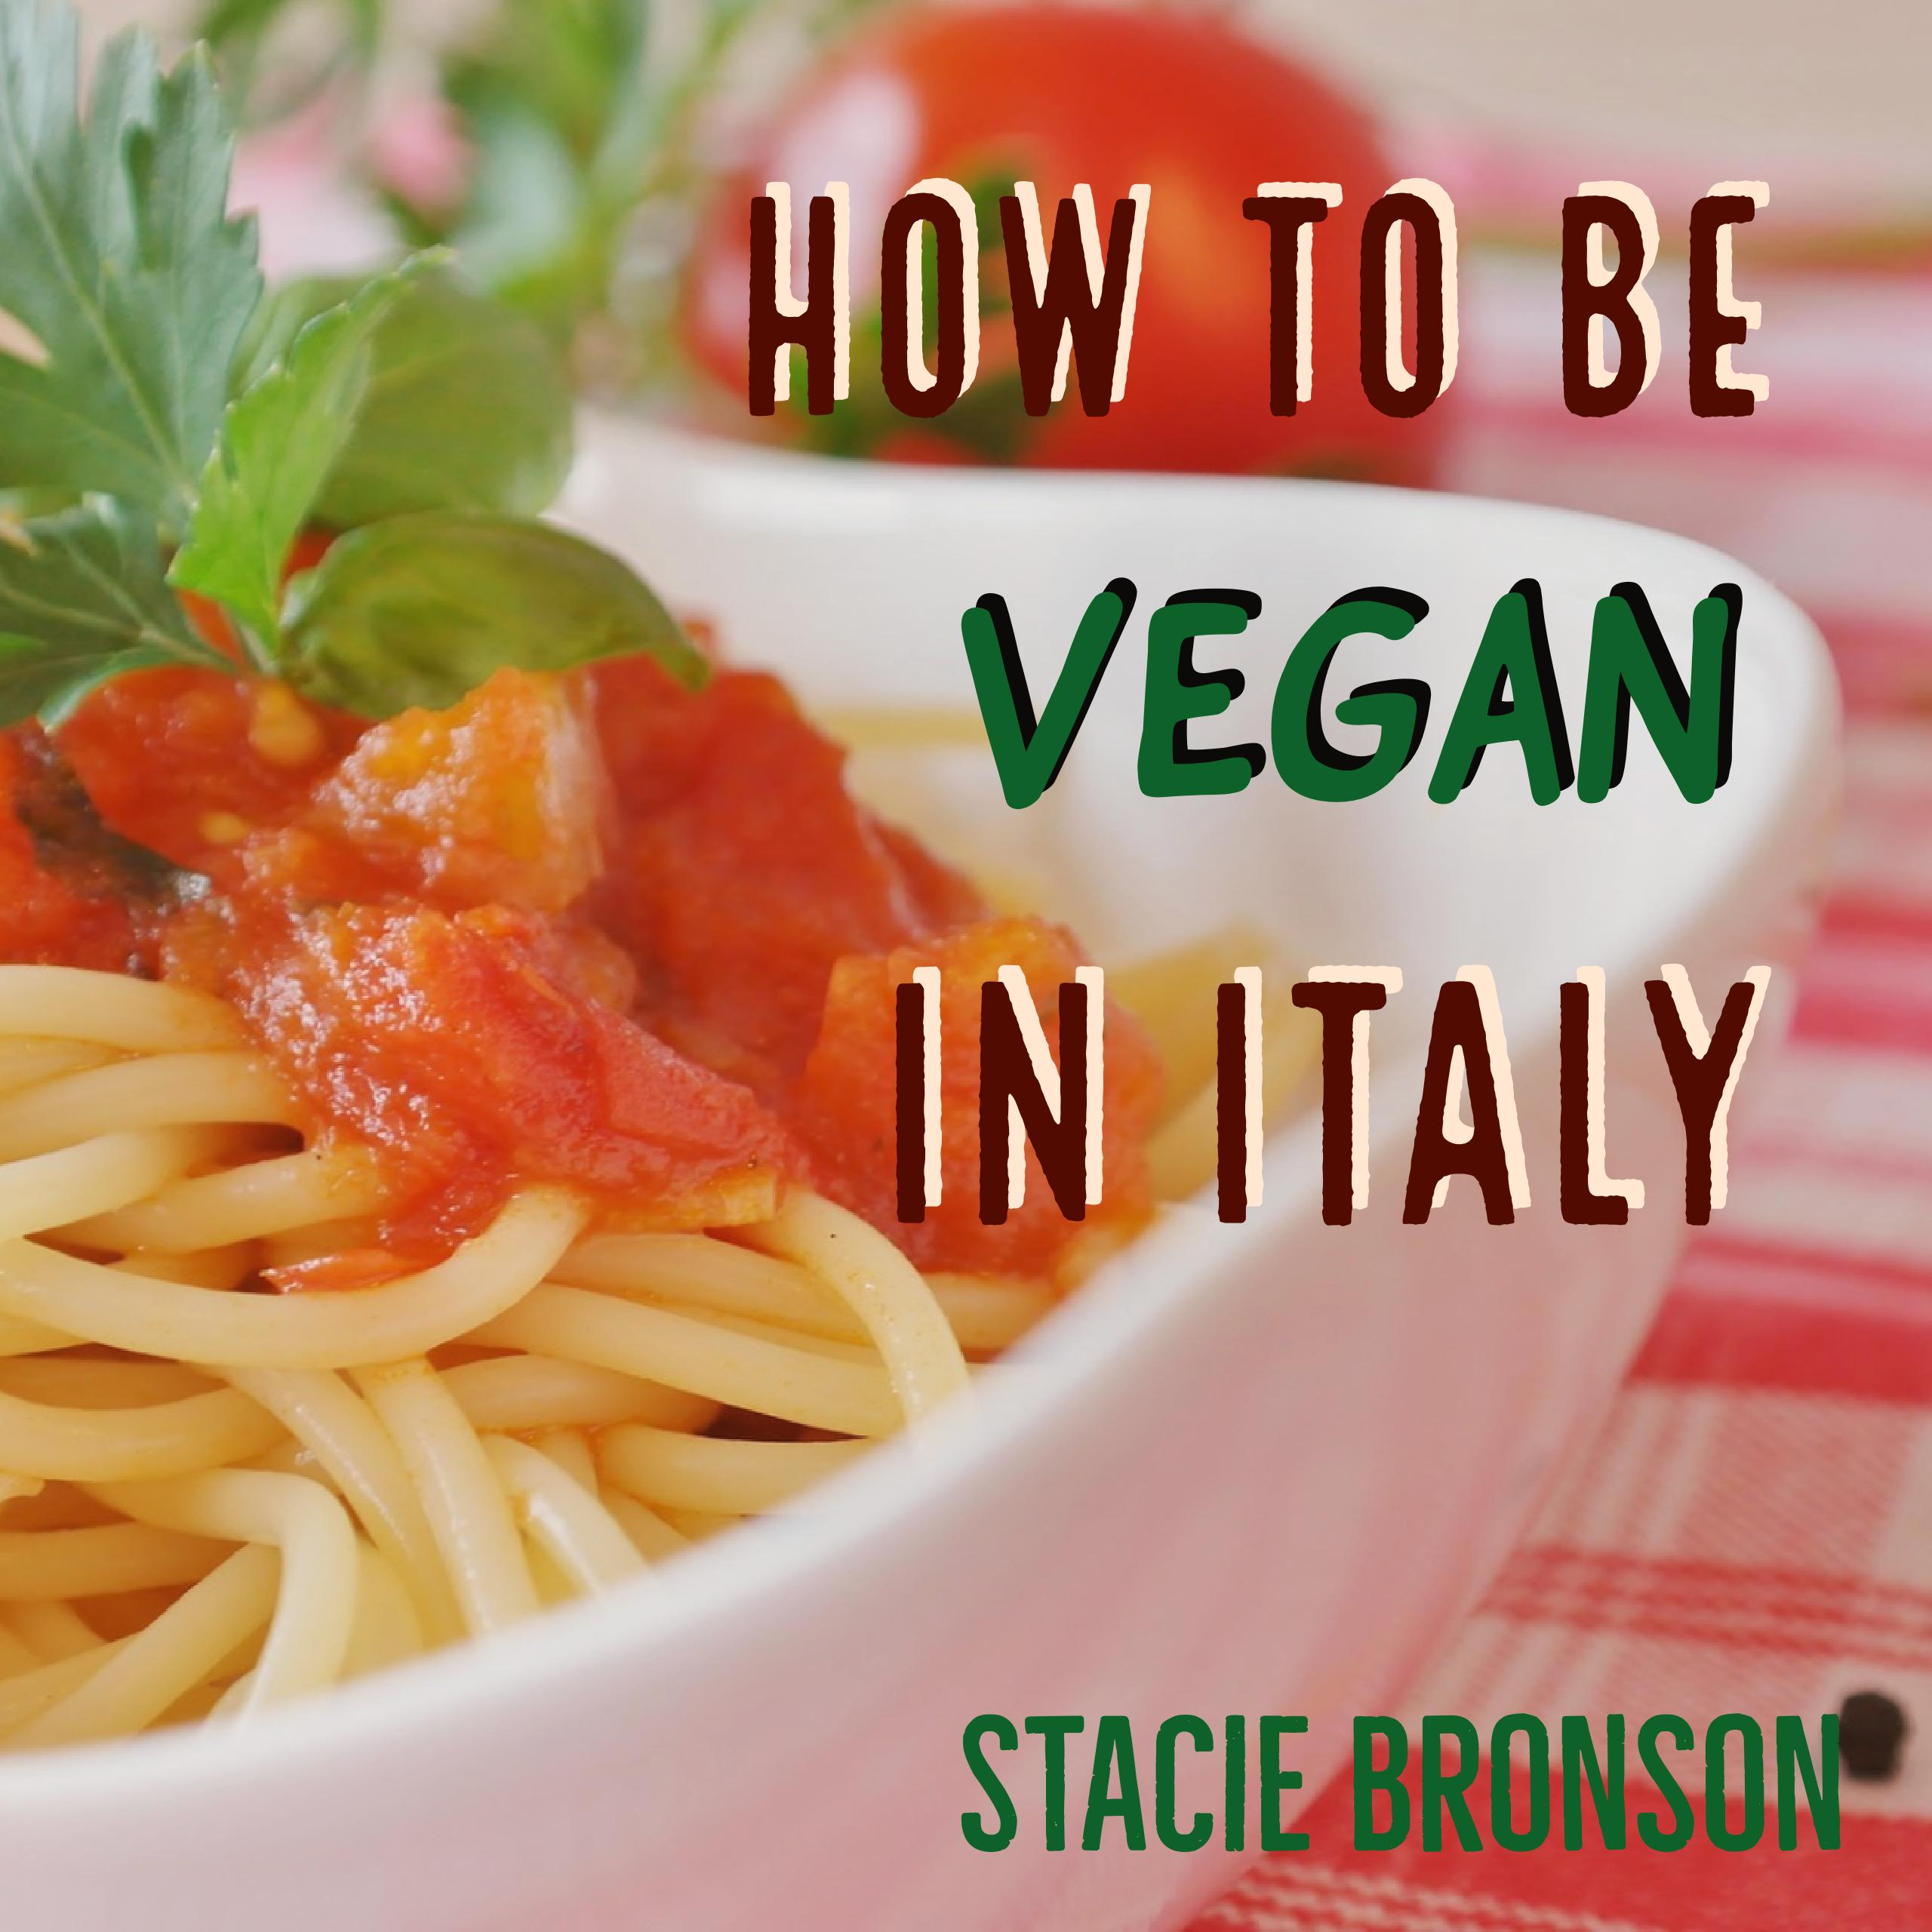 The Vegan Guide for Italy